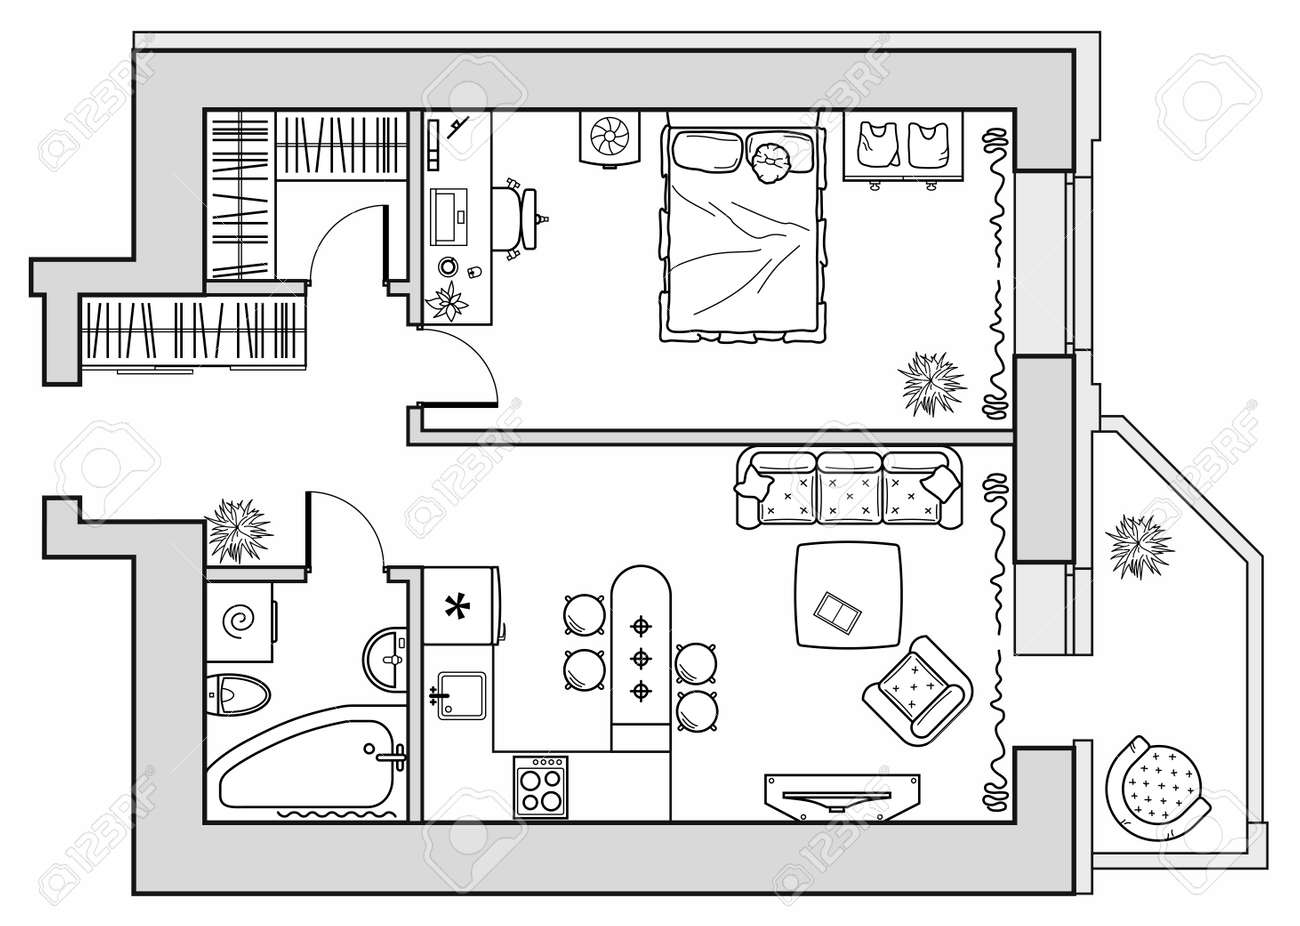 Planning of an apartment with furniture arrangement. Architectural drawing of a house (top view). Interior design floor plan from above. Vector layout - 168984204